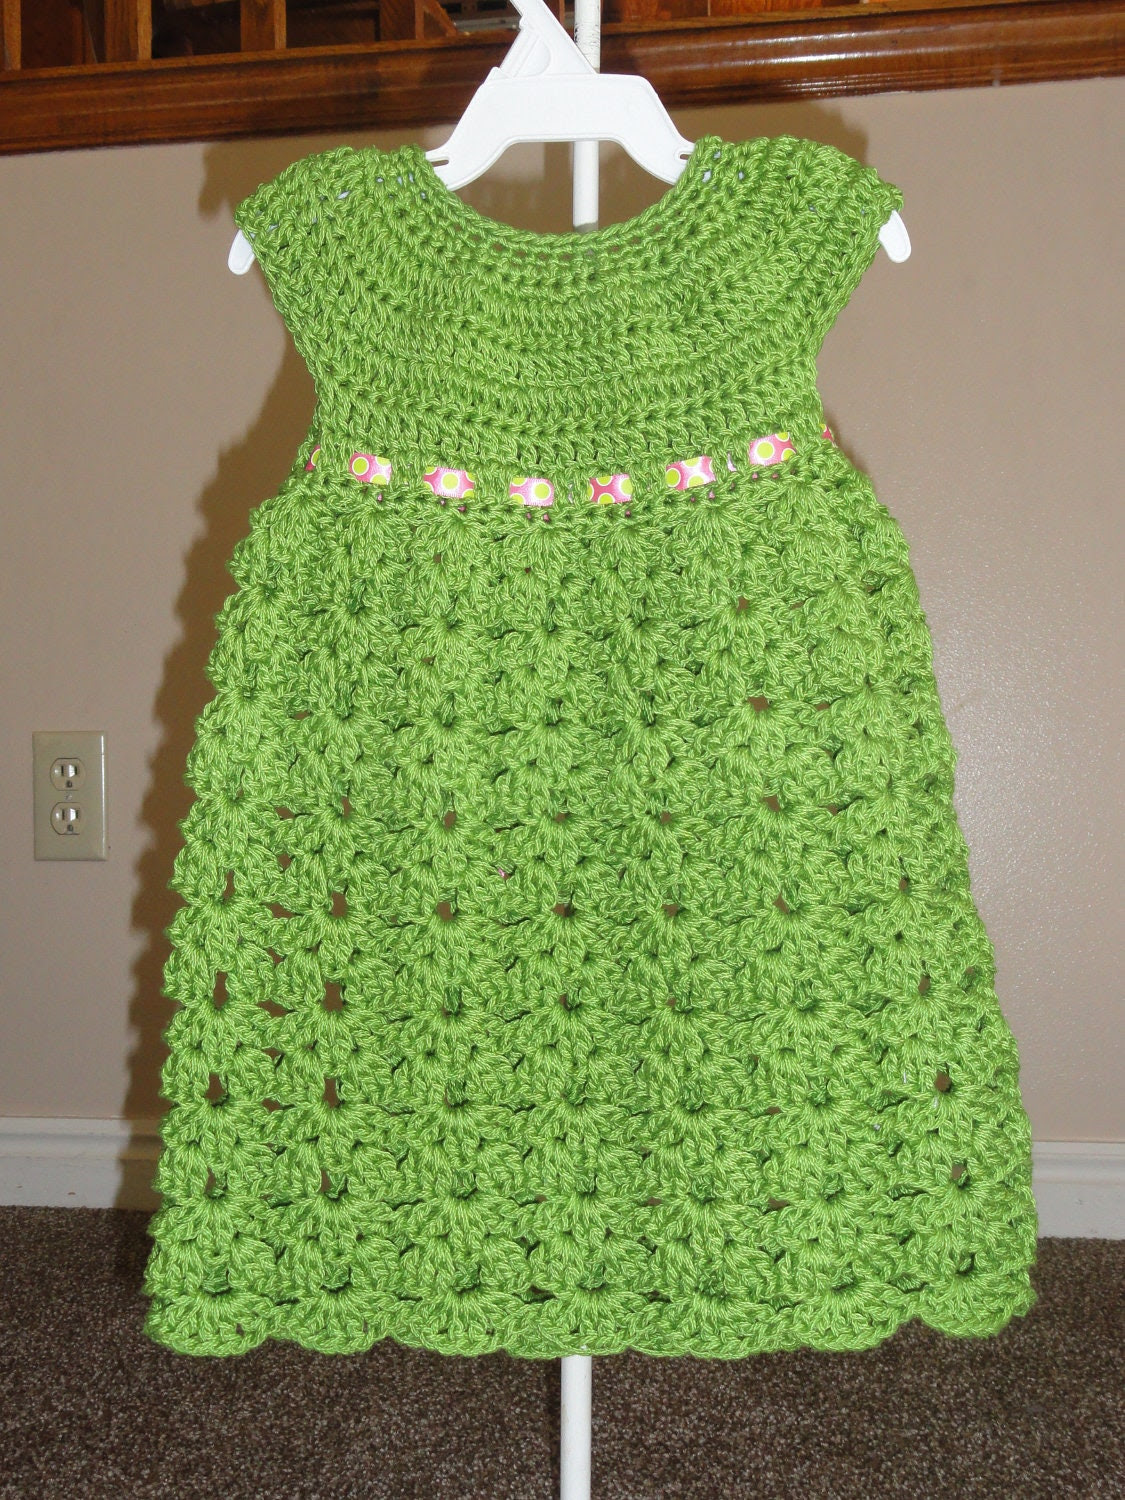 Fun and Easy Kaylen Dress Crochet Pattern Sizes 12 Months, 2T and 3T